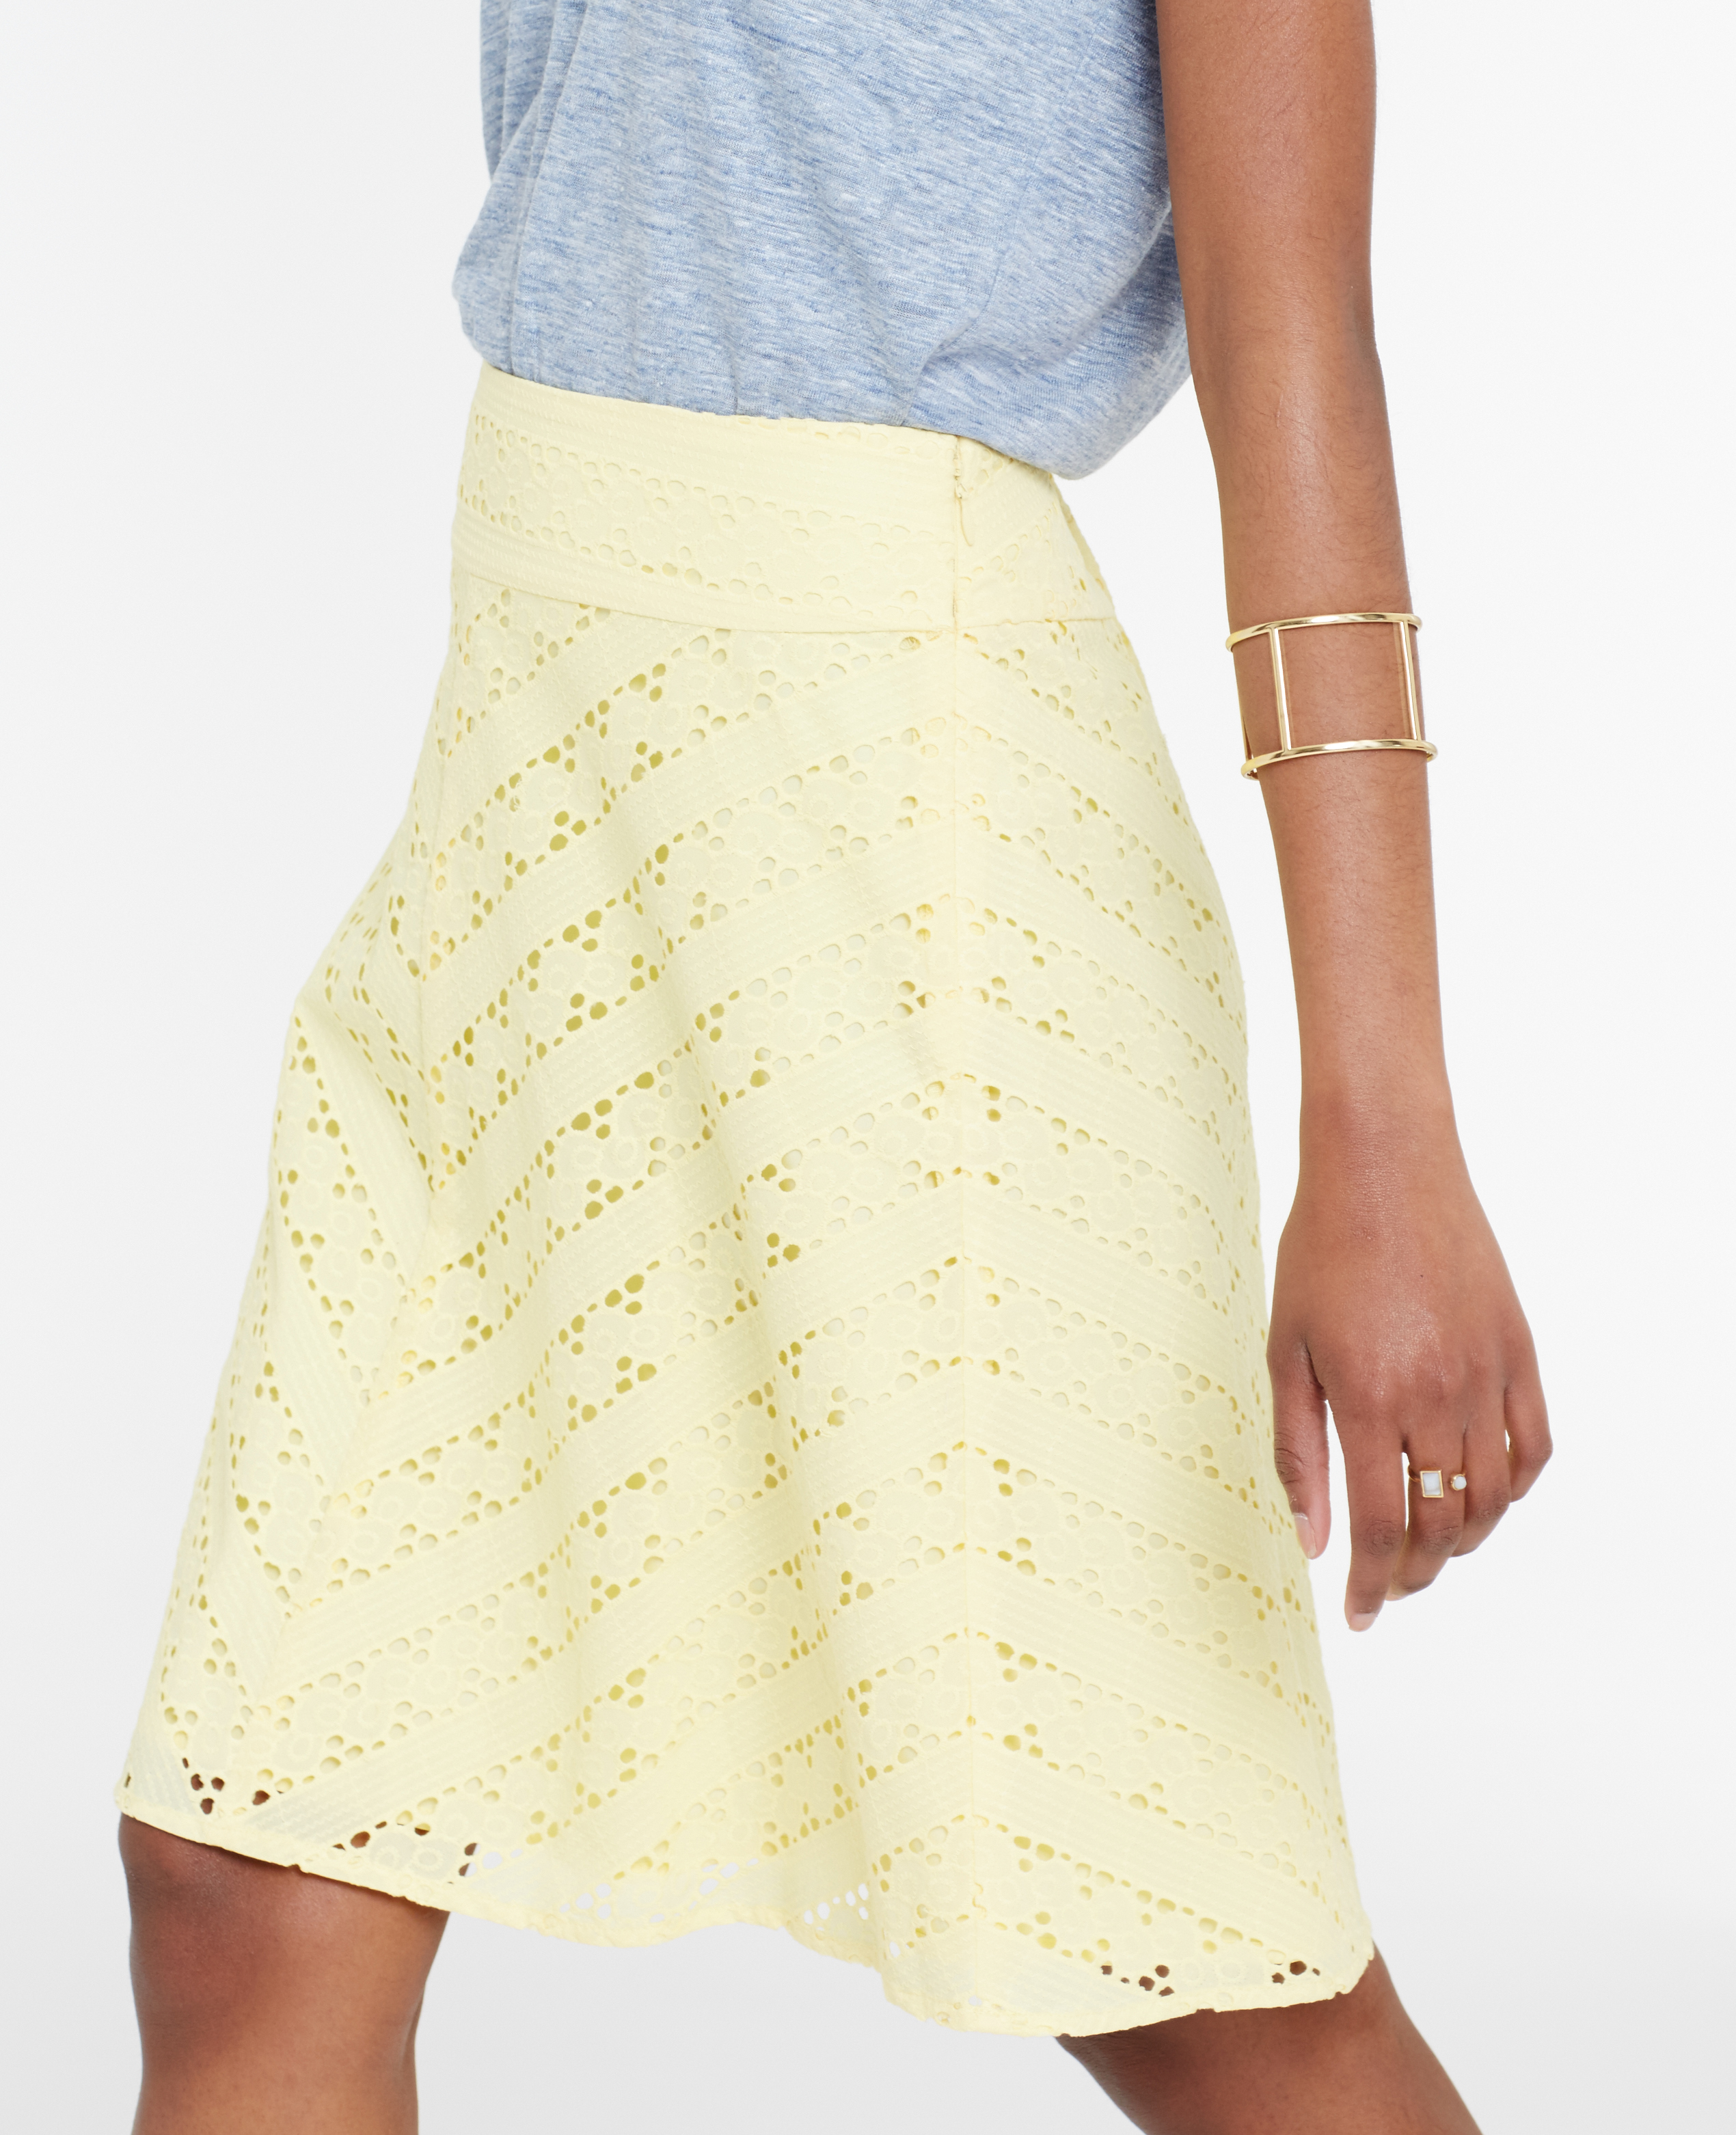 0ee832fda7 Ann Taylor Petite Chevron Eyelet Skirt in Yellow - Lyst